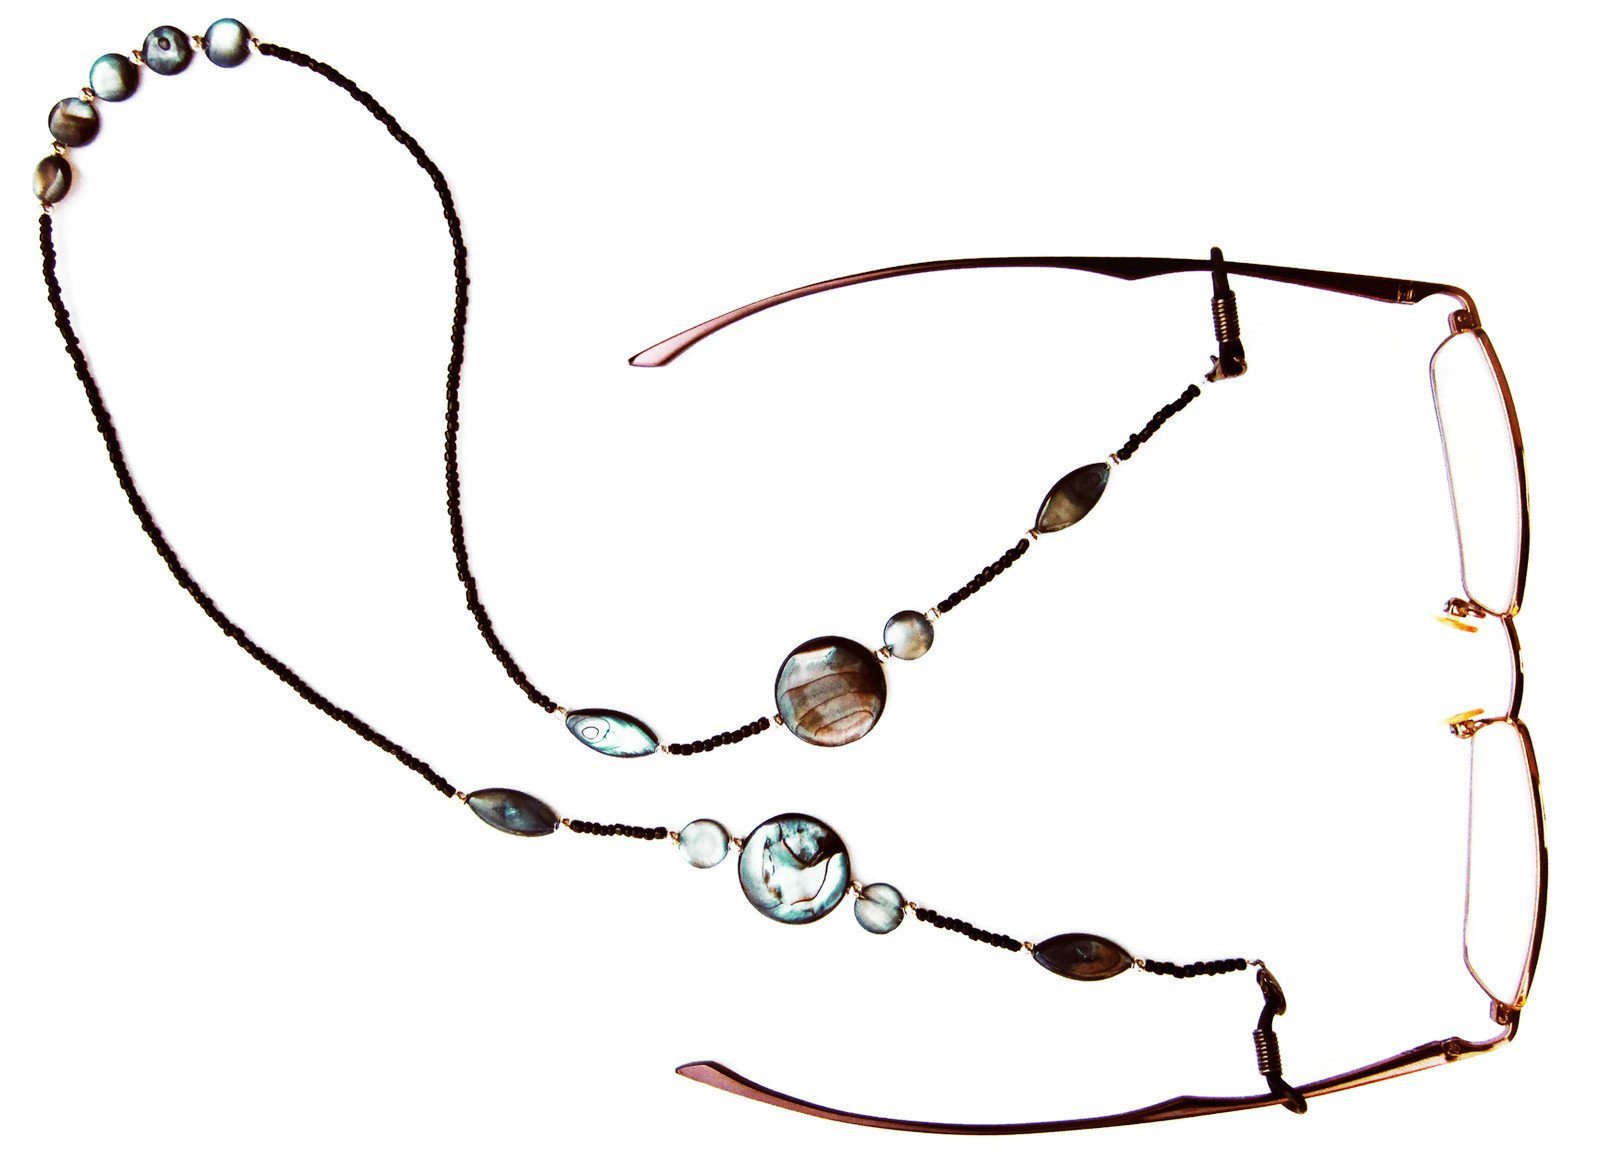 Silk Rose Women's Eyeglasses Fashion Chain and Badge Holder for IDs and Cards